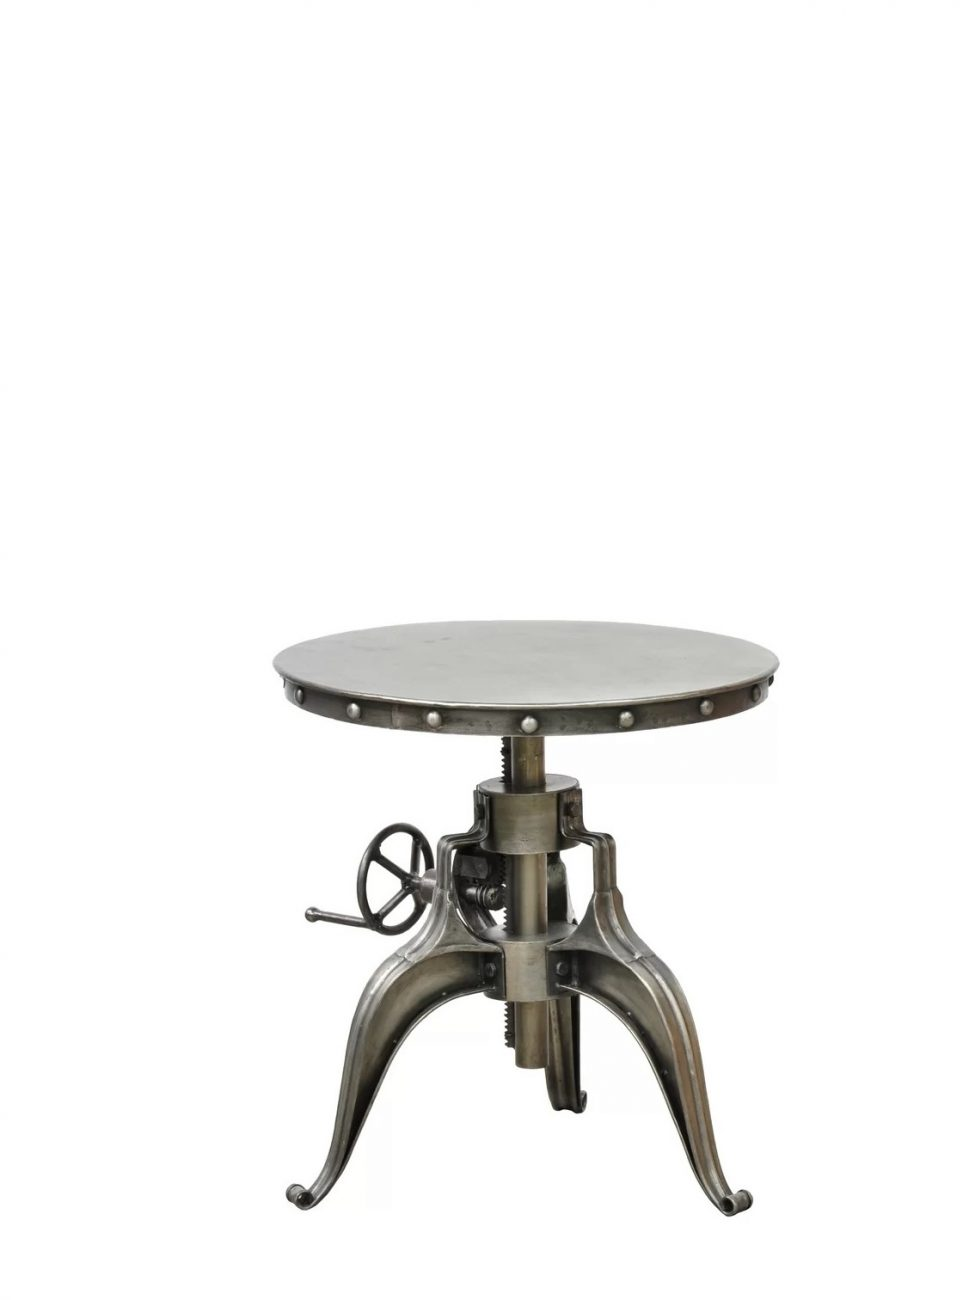 Crank Table 1 (Nickle)